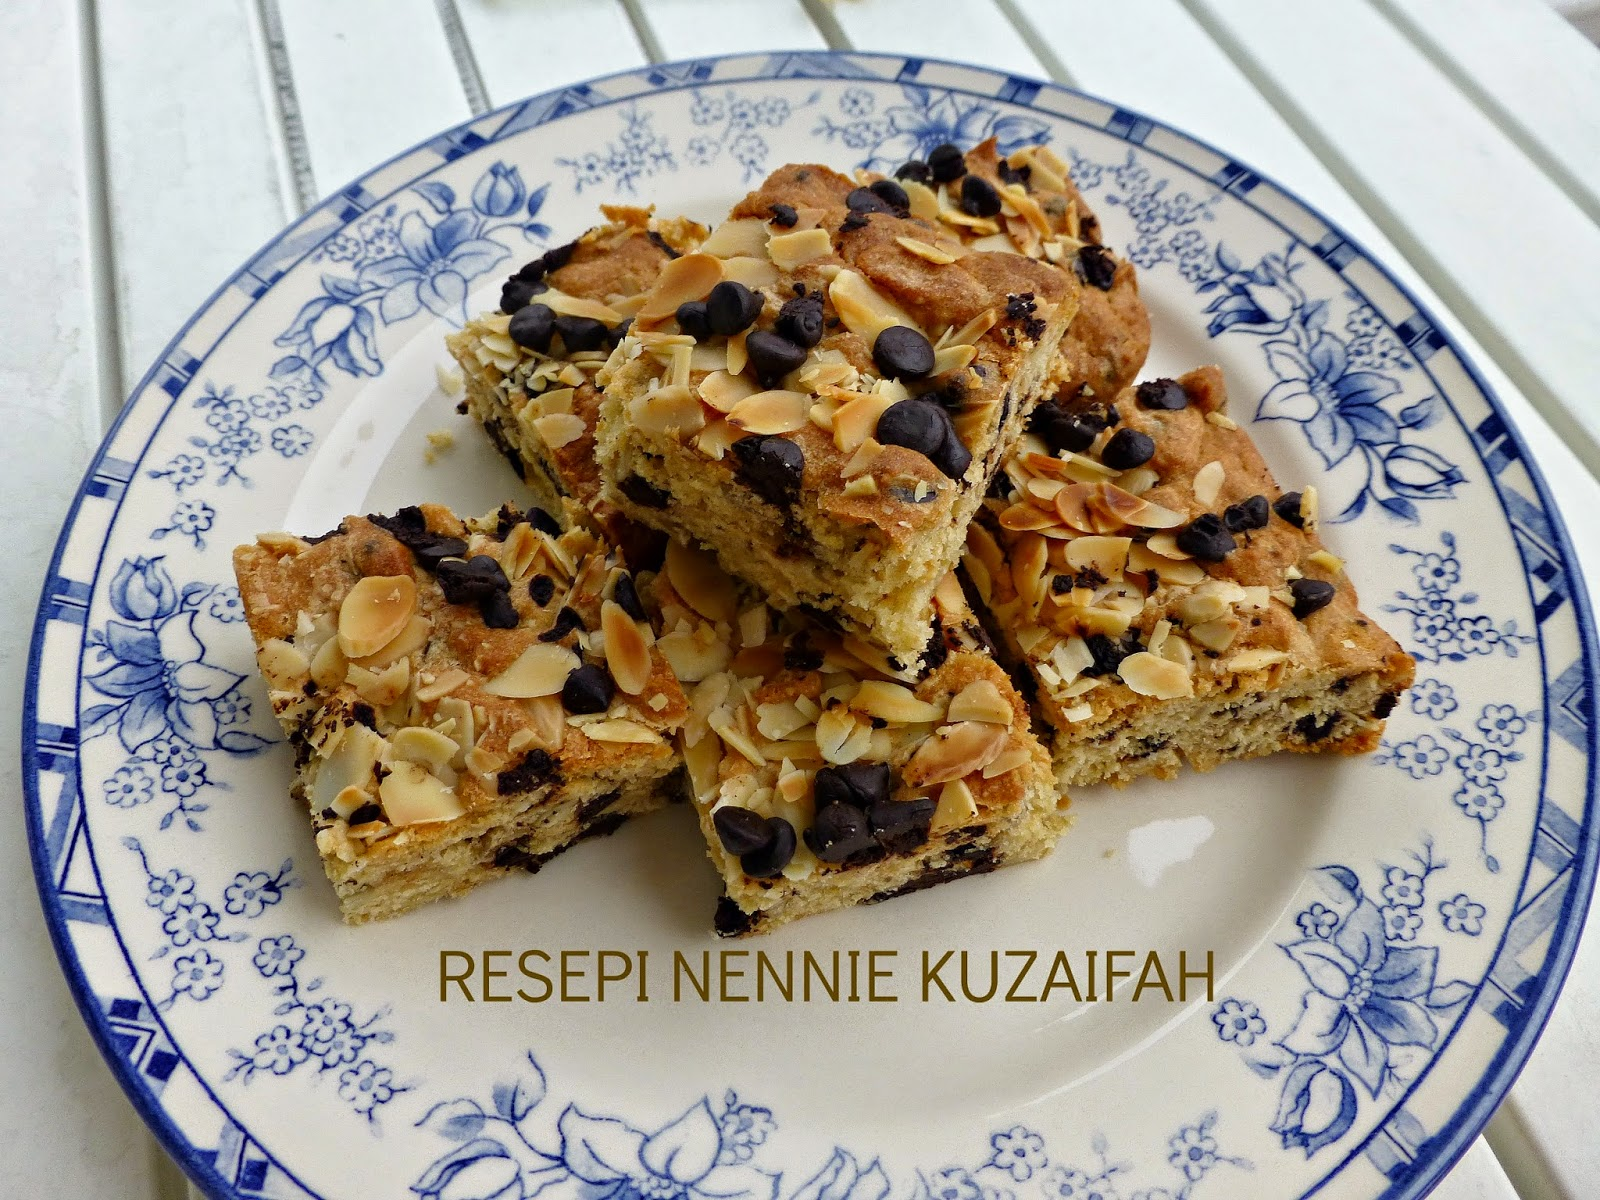 Vegan congo bars recipes - vegan congo bars recipe